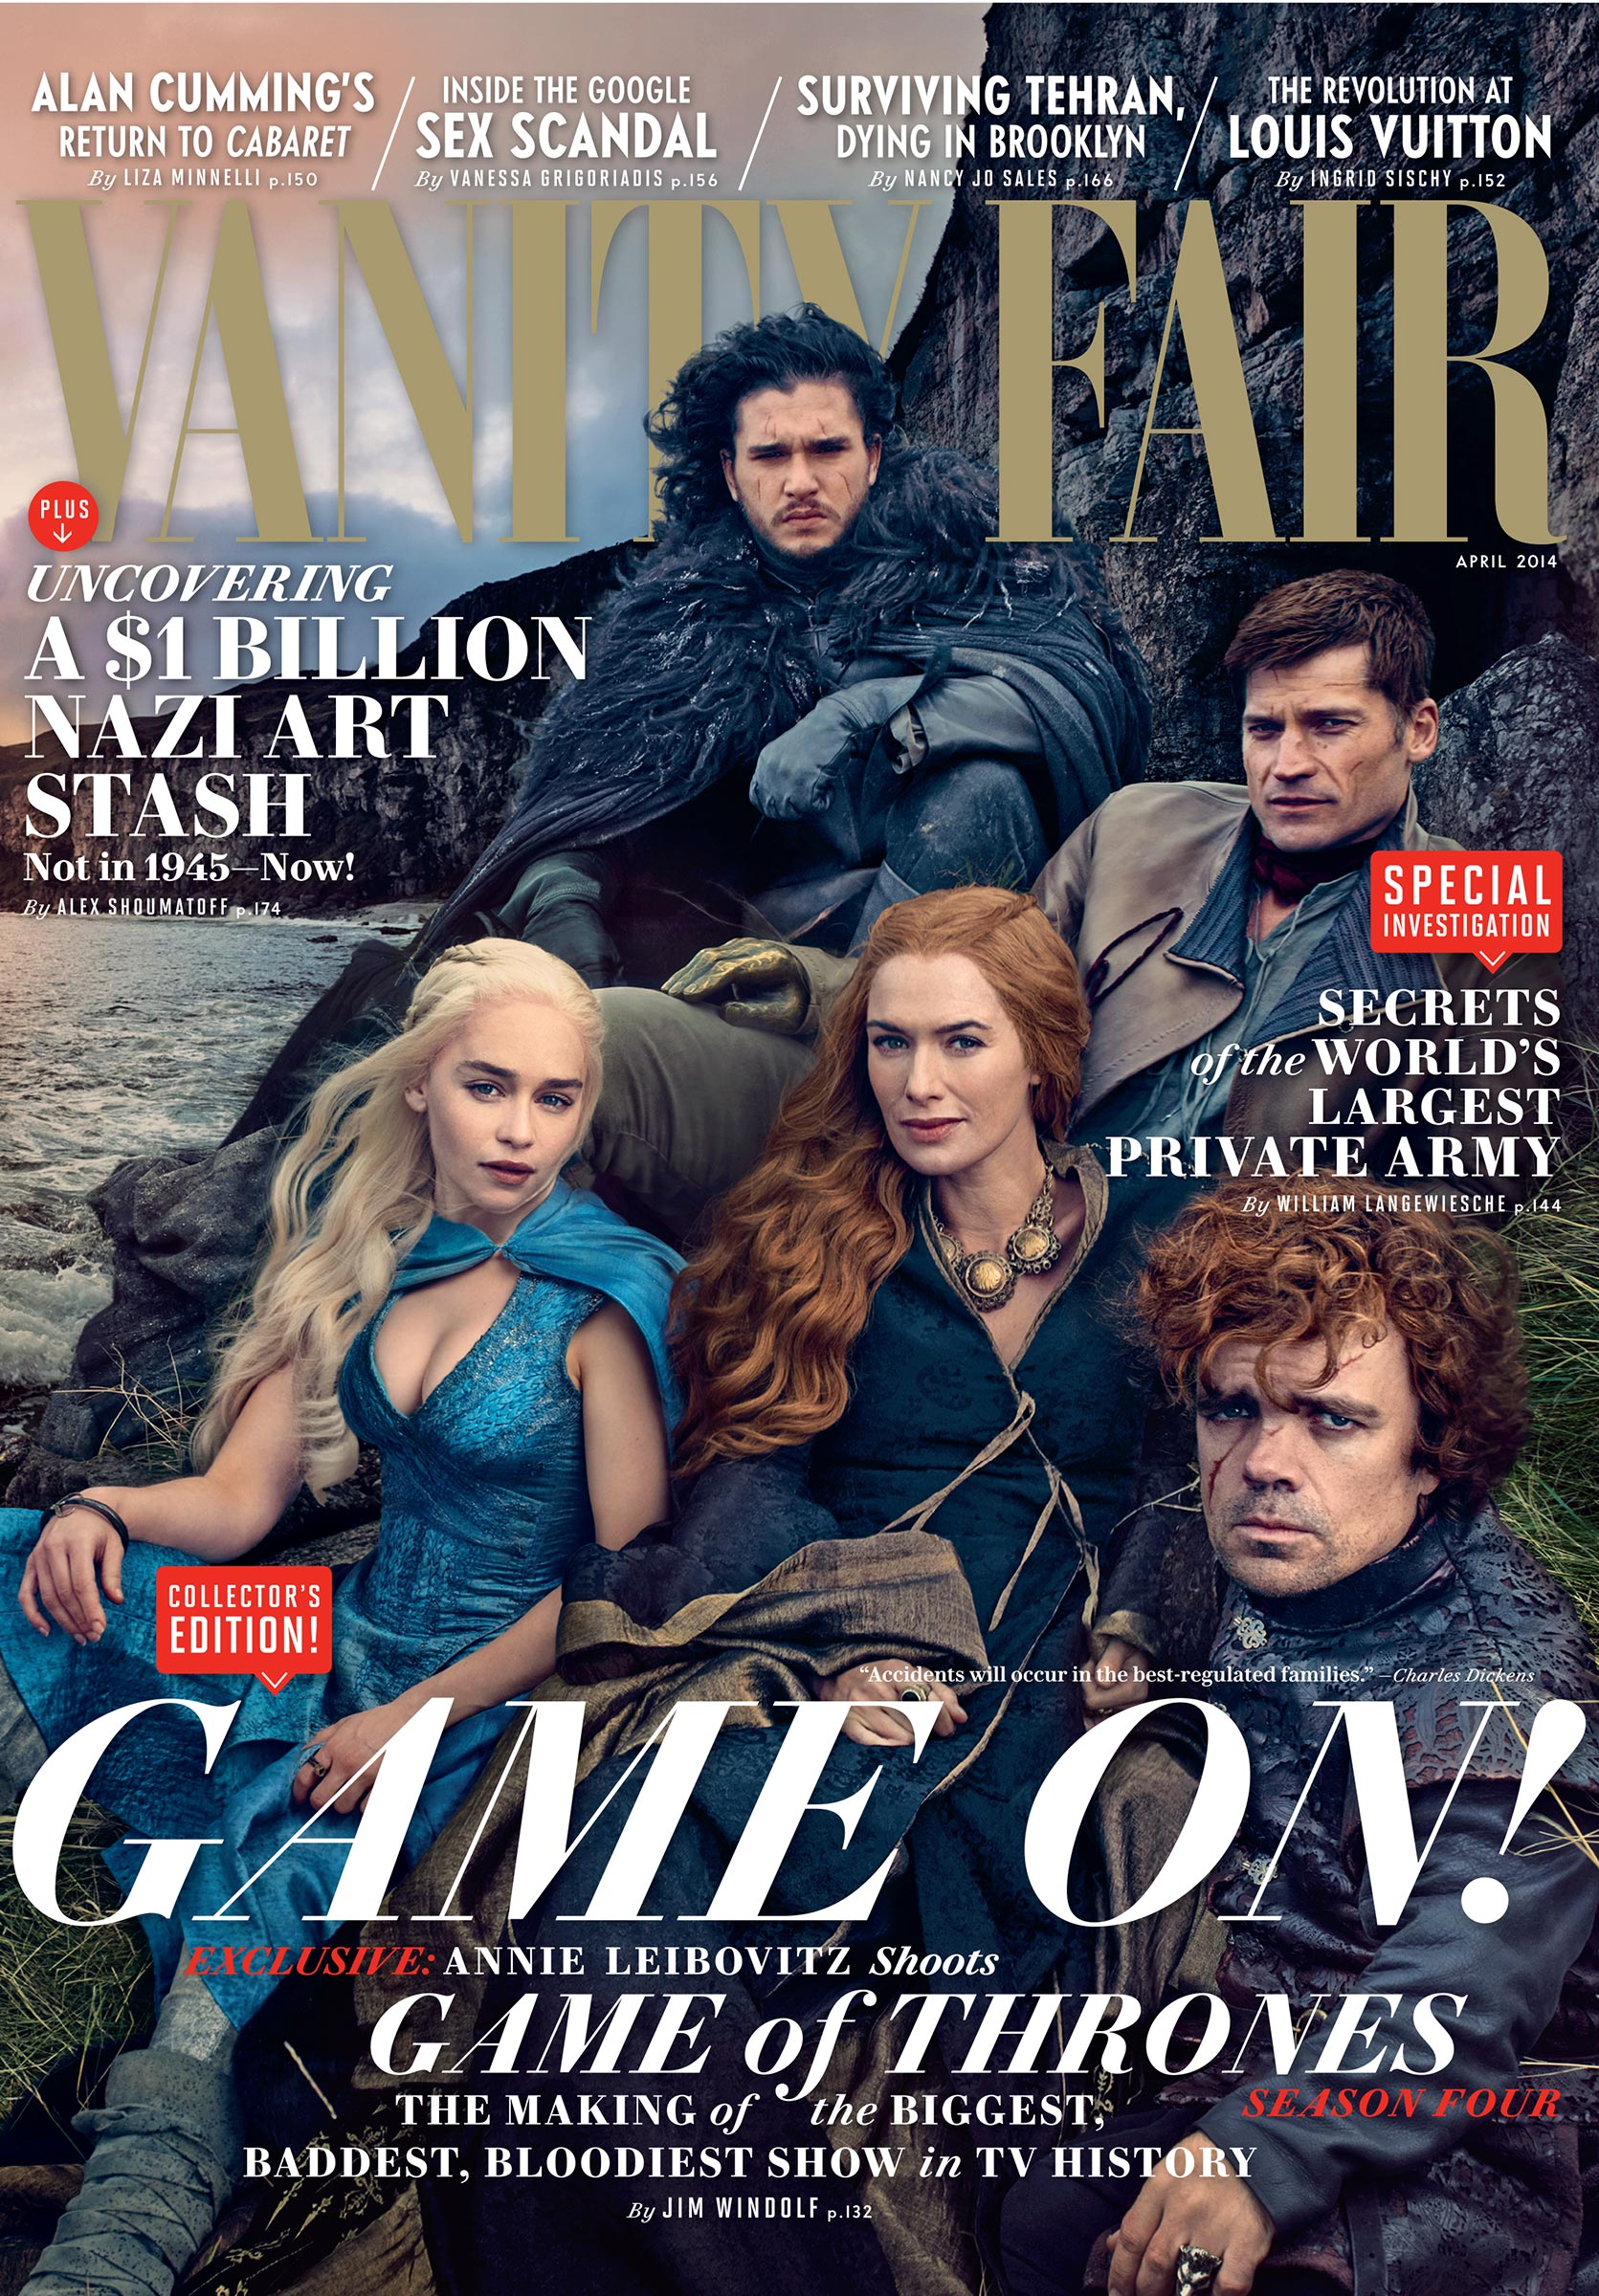 Vanity_Fair_Game_of_Thrones_Cover_April_2014